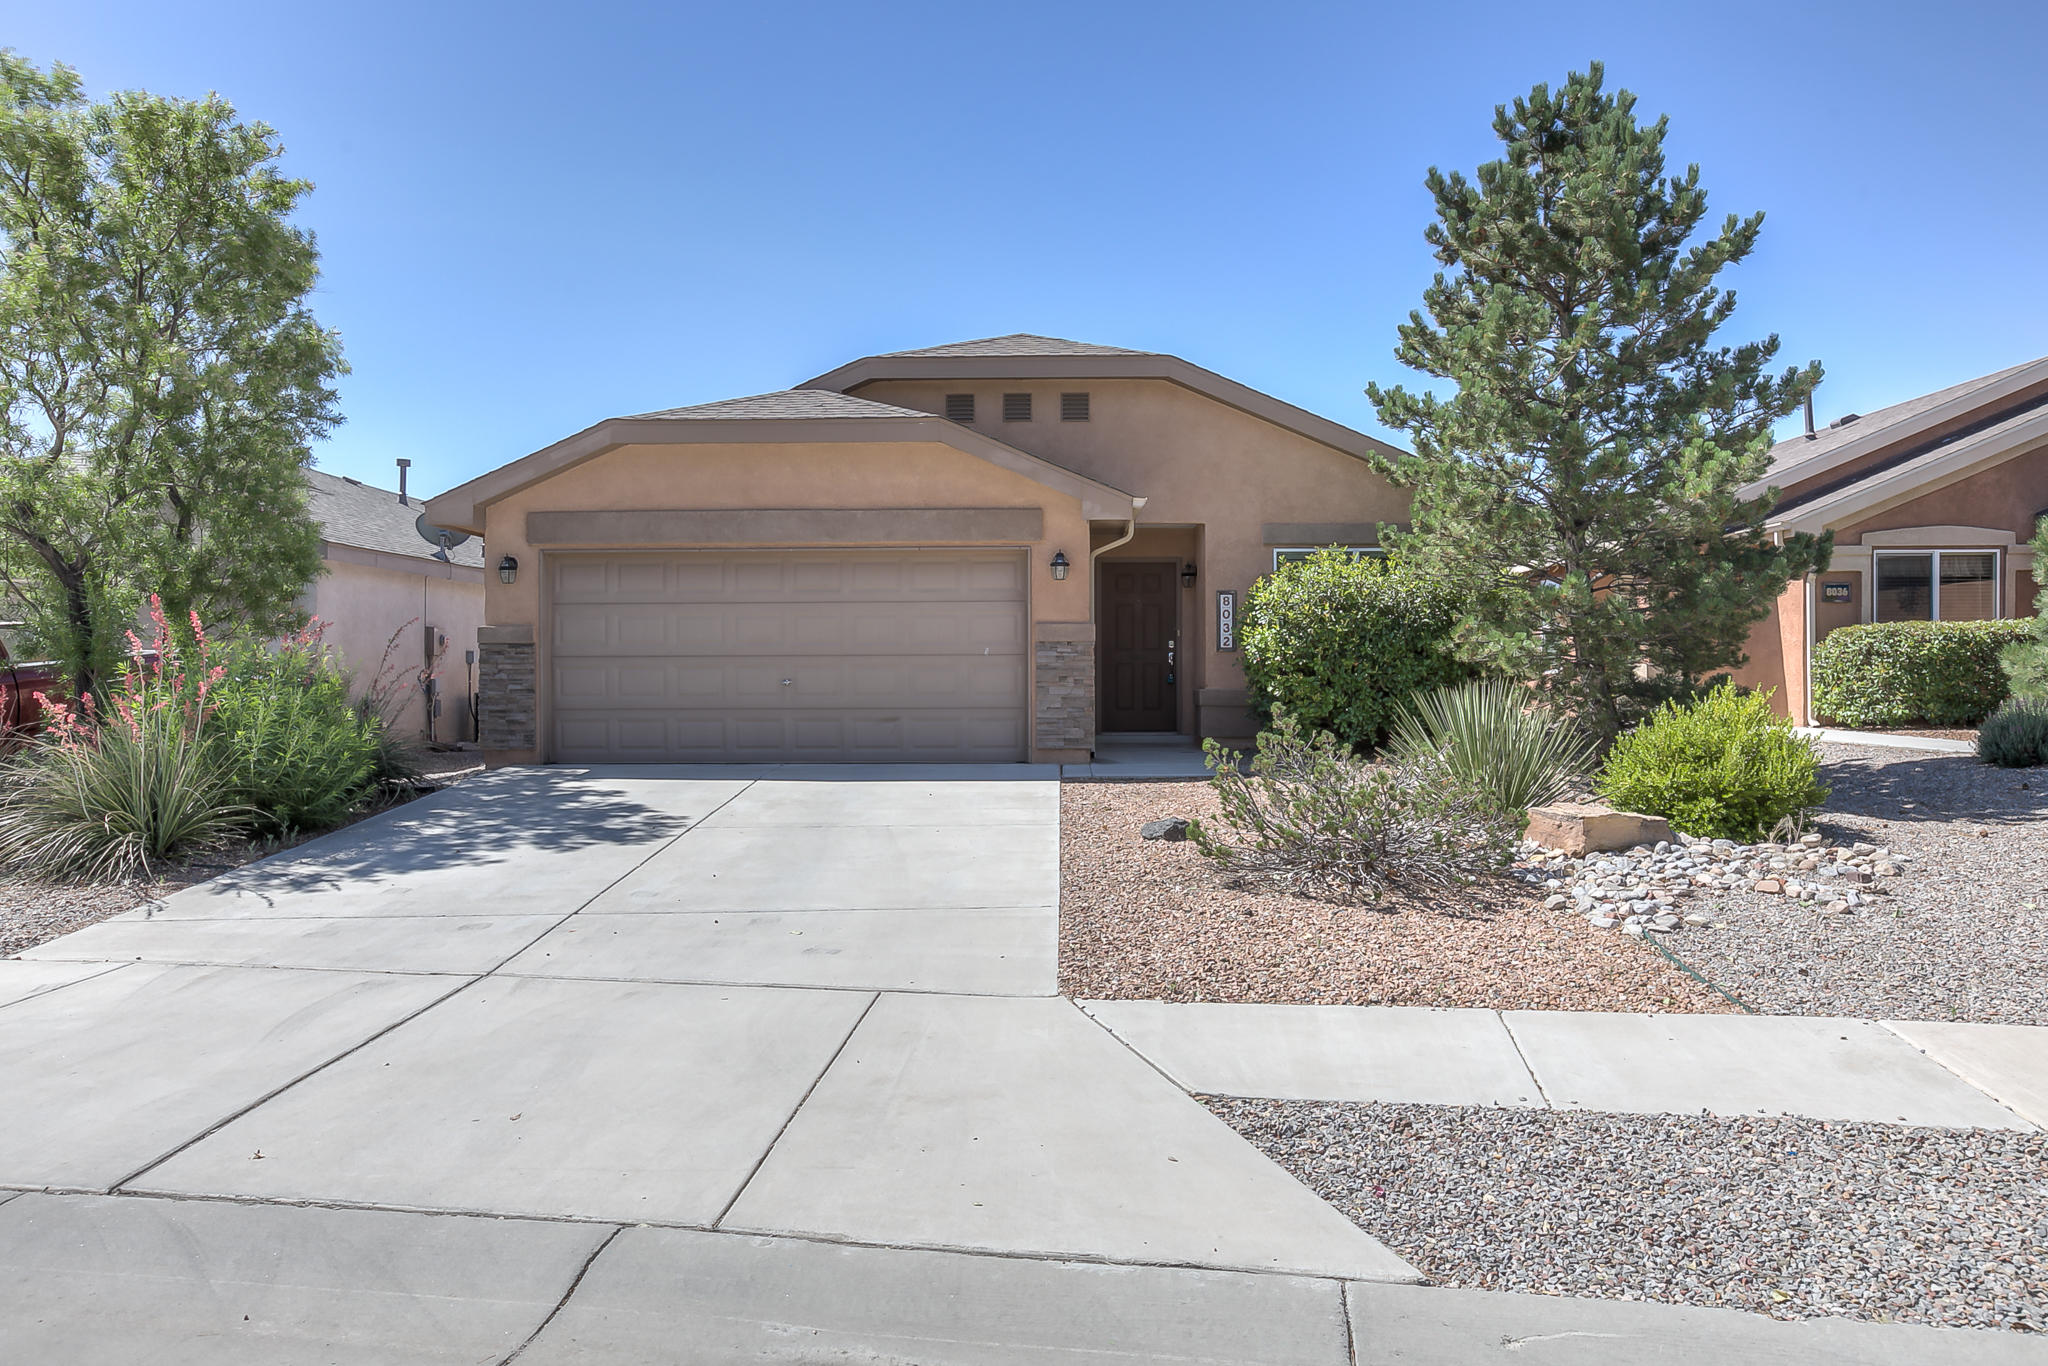 8032 NW Sierra Altos Place, Northwest Albuquerque and Northwest Heights, New Mexico